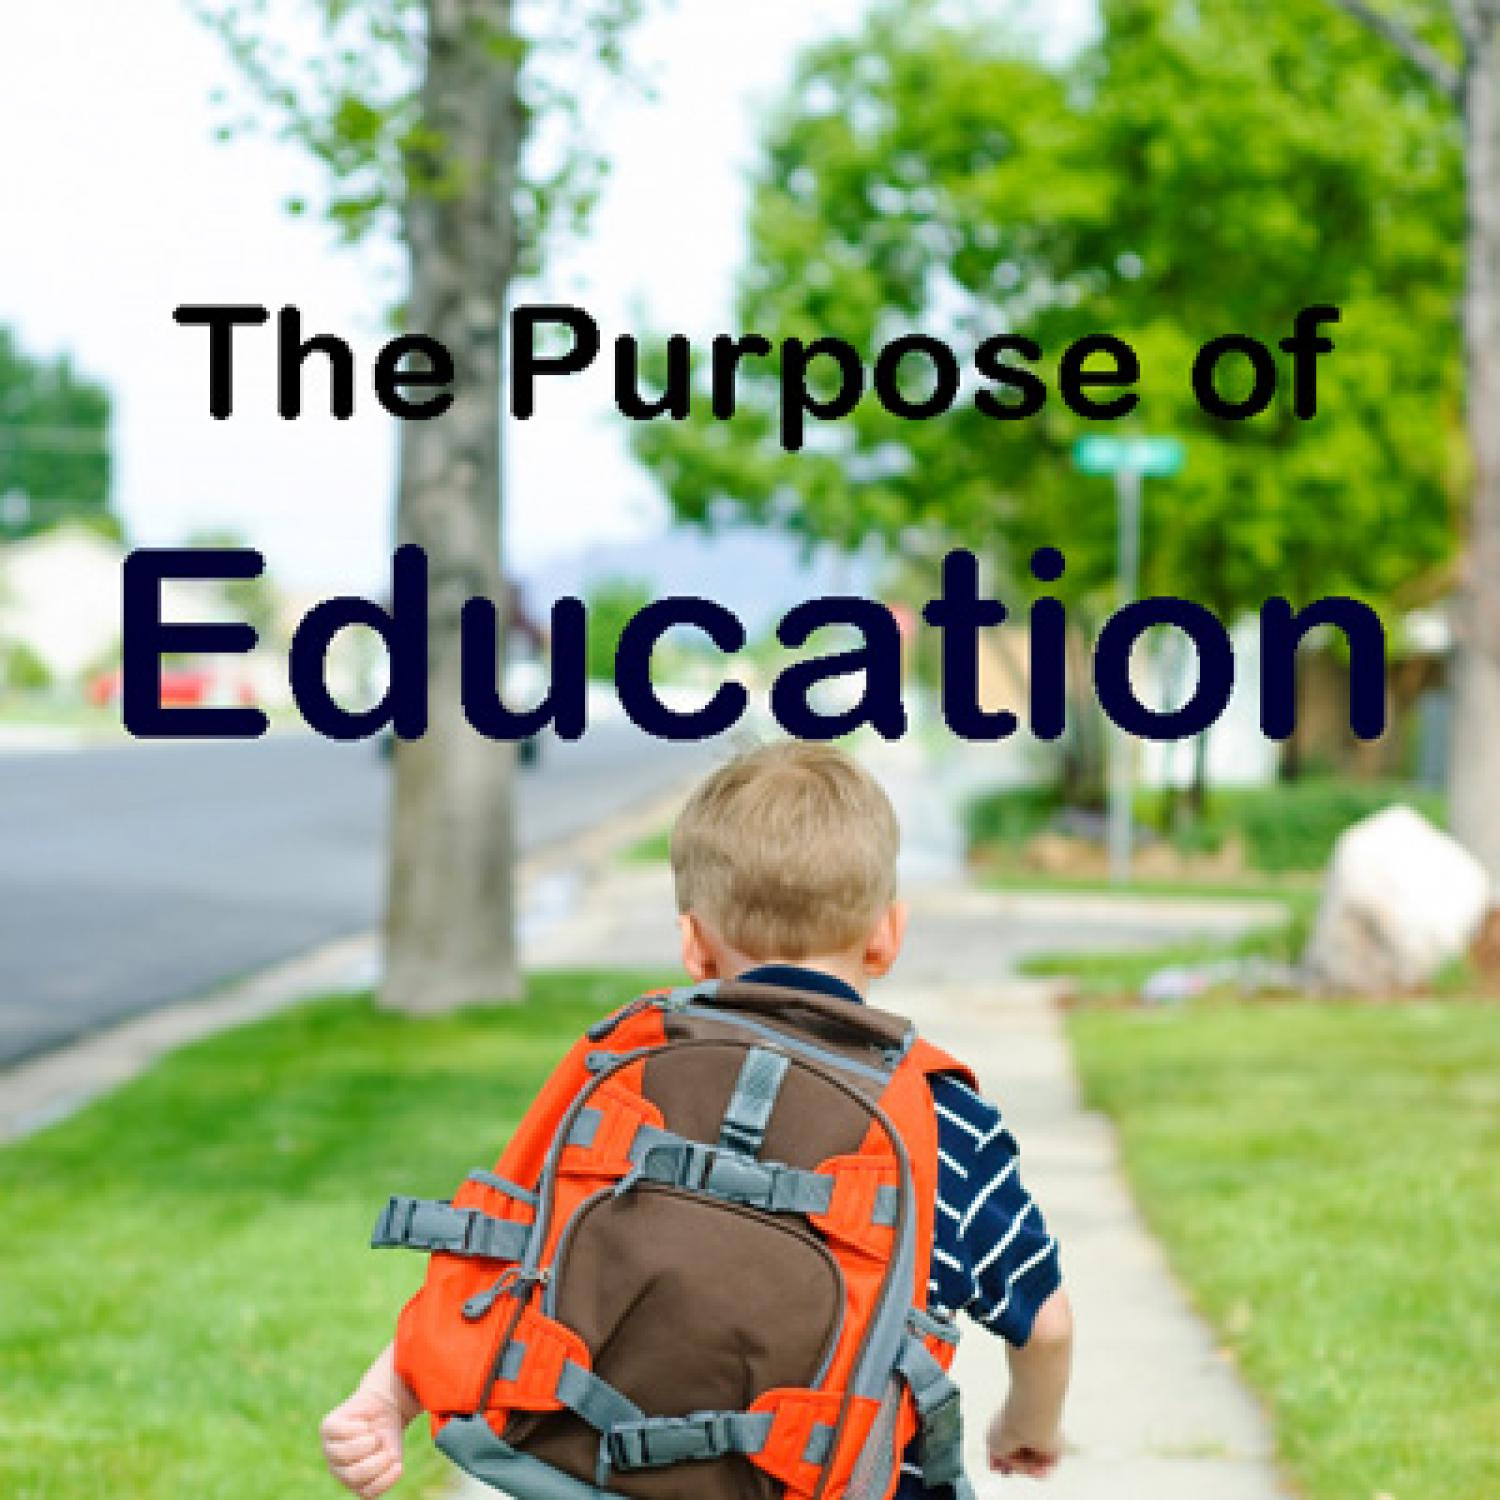 essay on the purpose of education Essay on purpose of education - experience the benefits of qualified custom writing assistance available here quick and reliable writings from industry best agency.